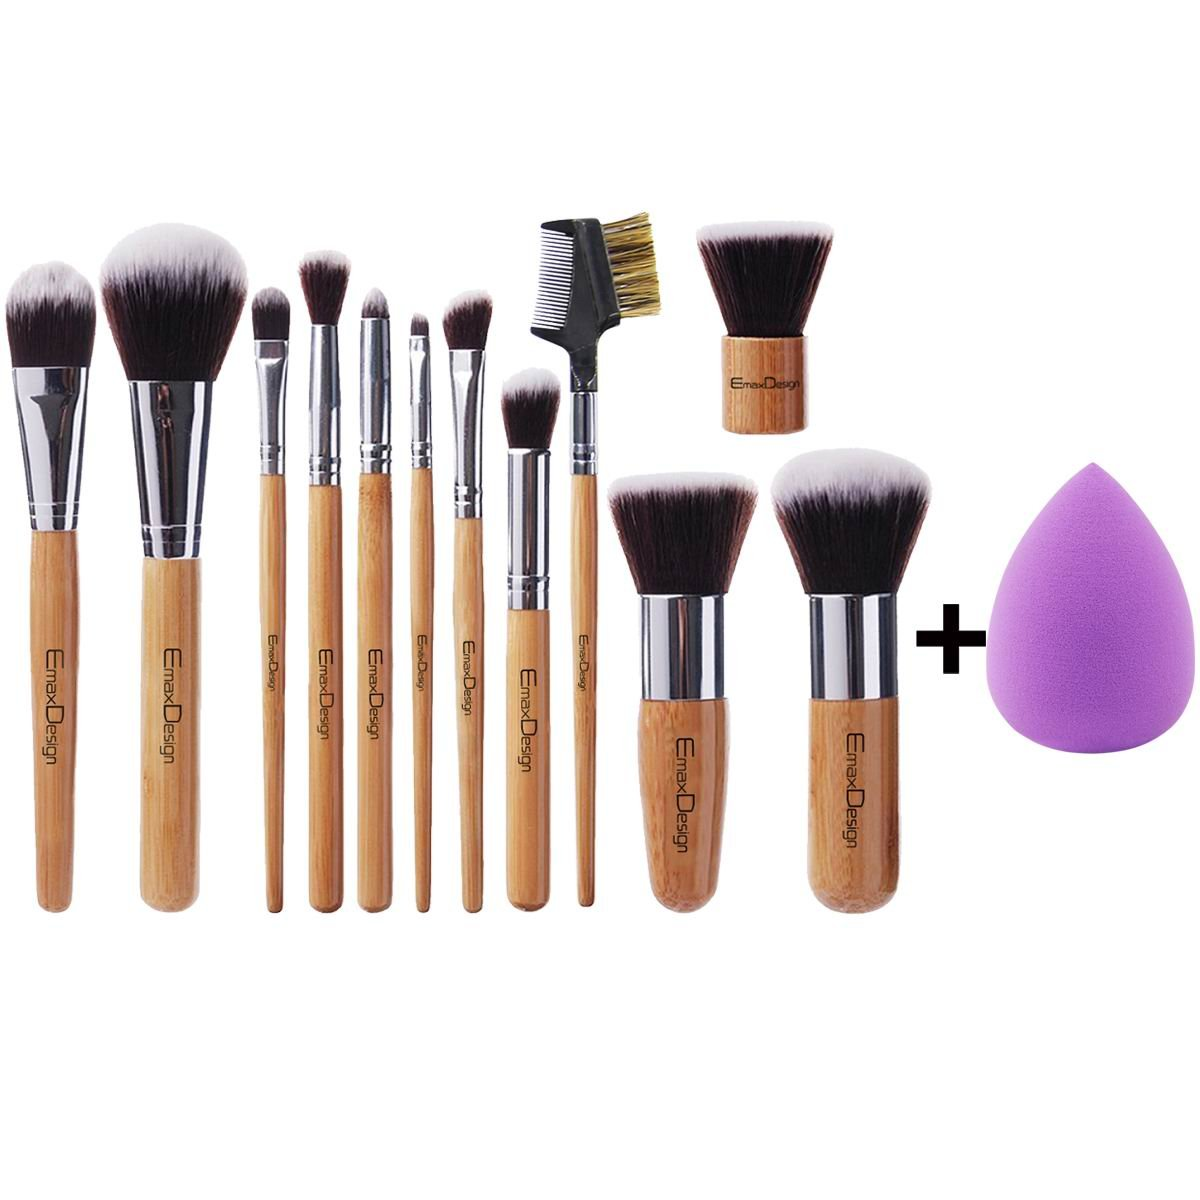 EmaxDesign 12+1 Pieces Makeup Brush Set, 12 Pieces Professional Bamboo Handle Foundation Blending Blush Eye Face Liquid Powder Cream Cosmetics Brushes & 1 Piece purple Beauty Sponge Blender